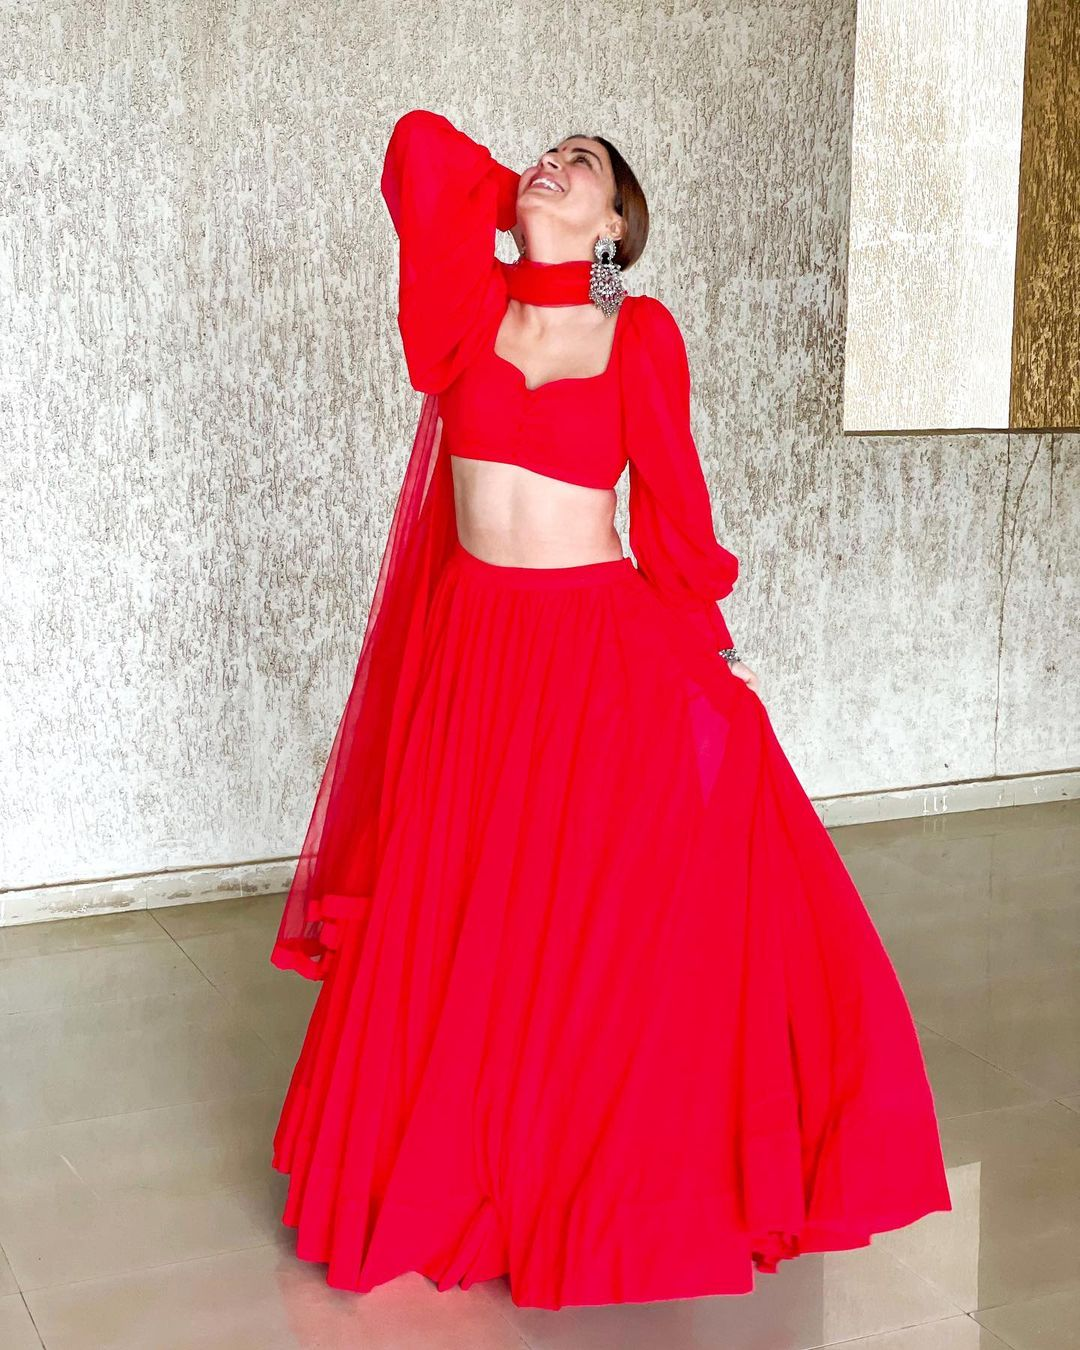 What A Beauty: Shraddha Arya looks gorgeous in red ethnic blouse and lehenga, does a gorgeous spin to mesmerize fans   IWMBuzz